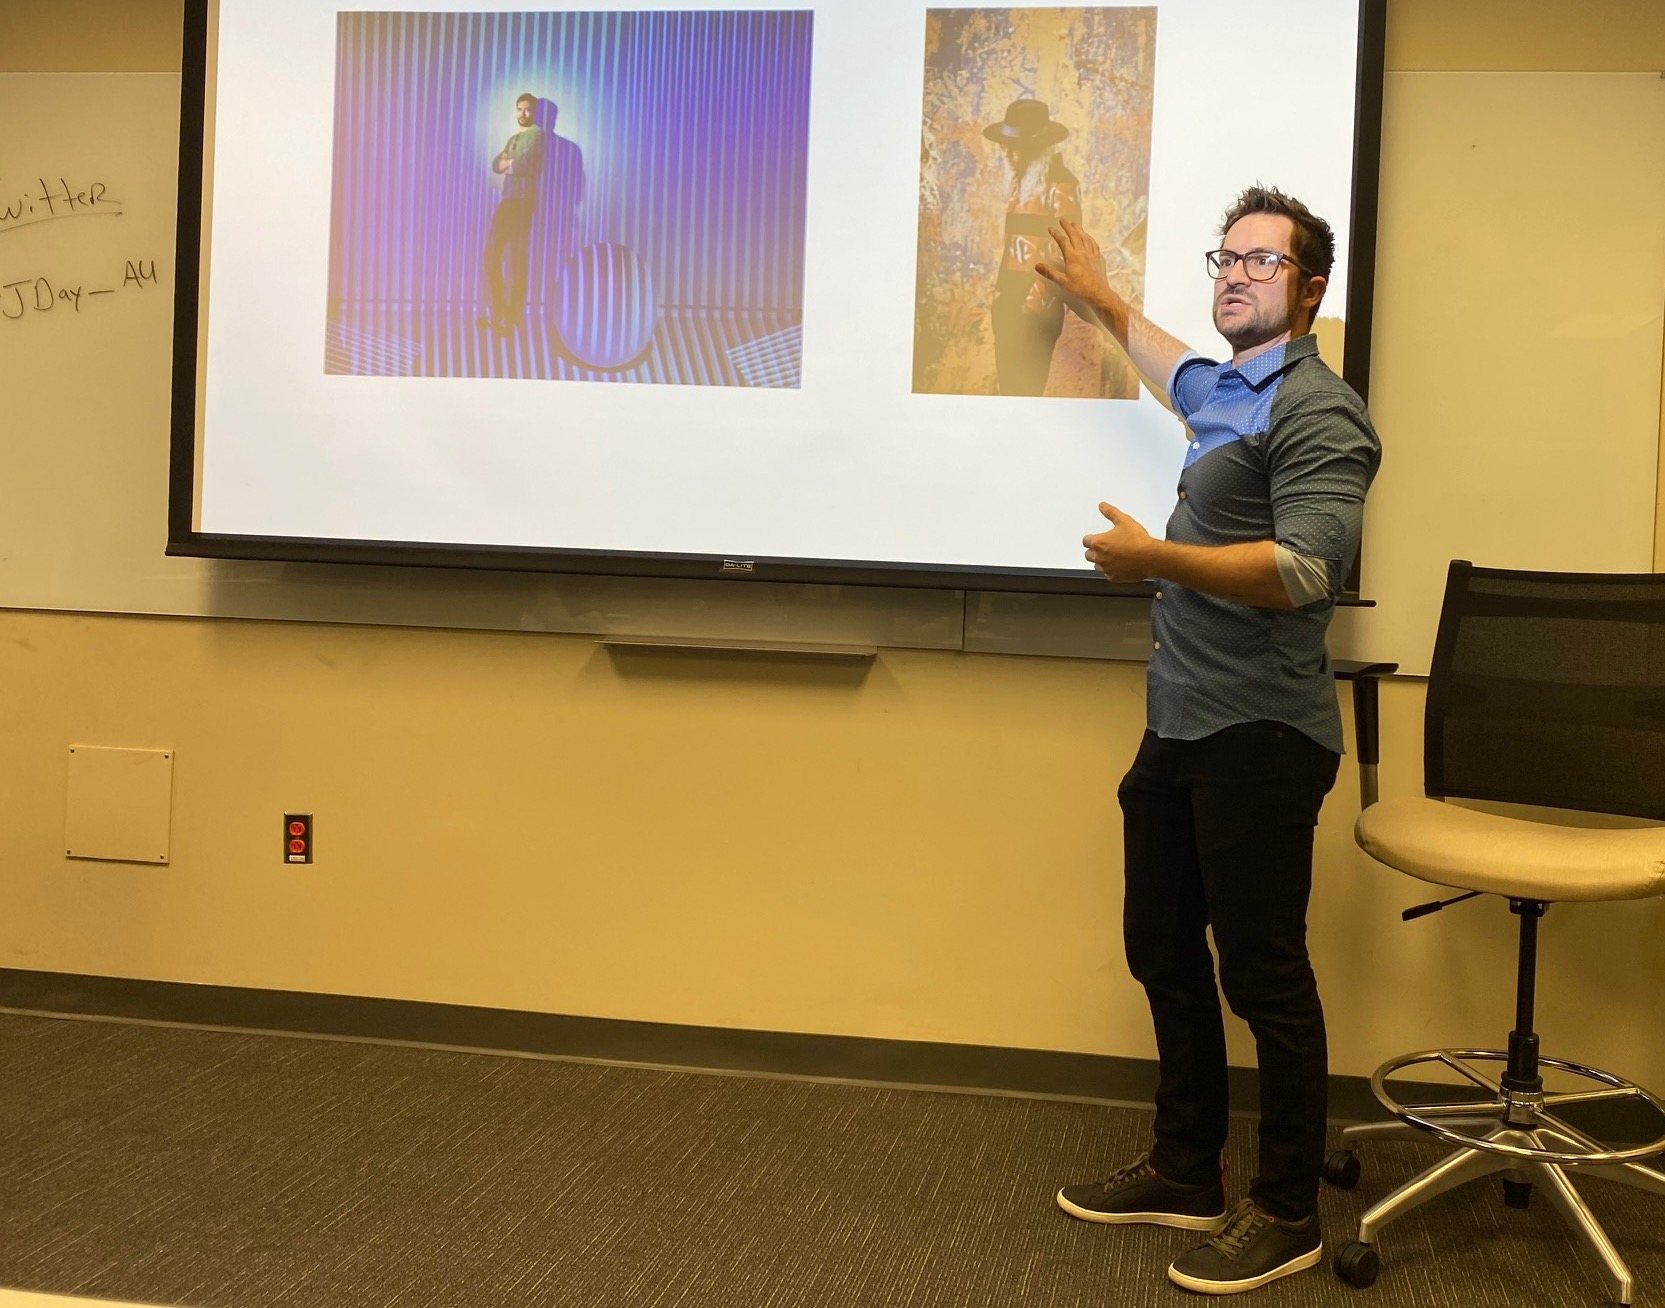 Professor Dylan Wilson points to two photos as he teaches photojournalism class